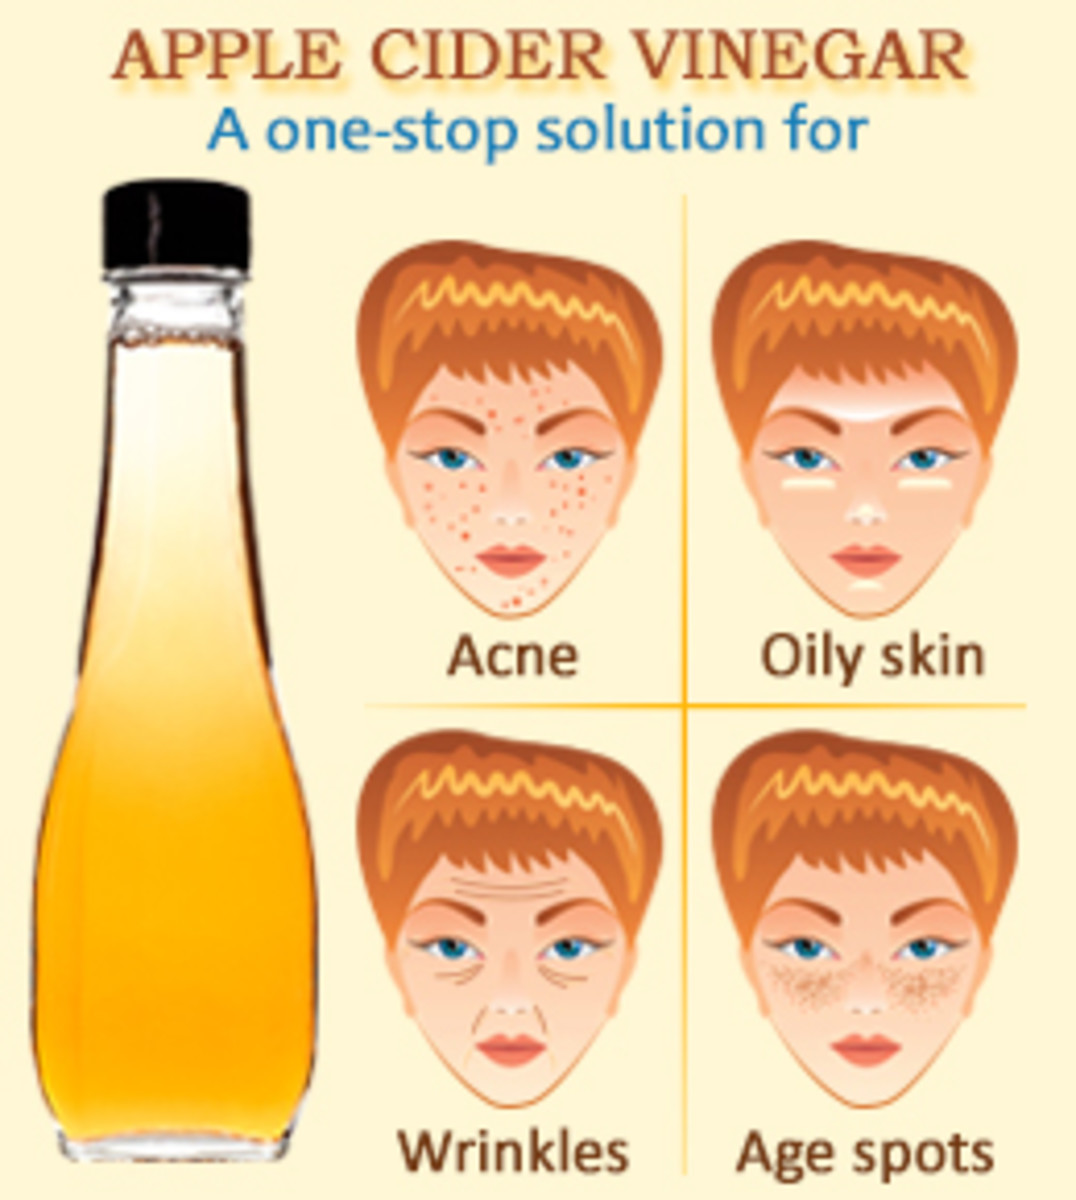 Apple cider vinegar is a very versatile ingredient to use in DIY skin care.